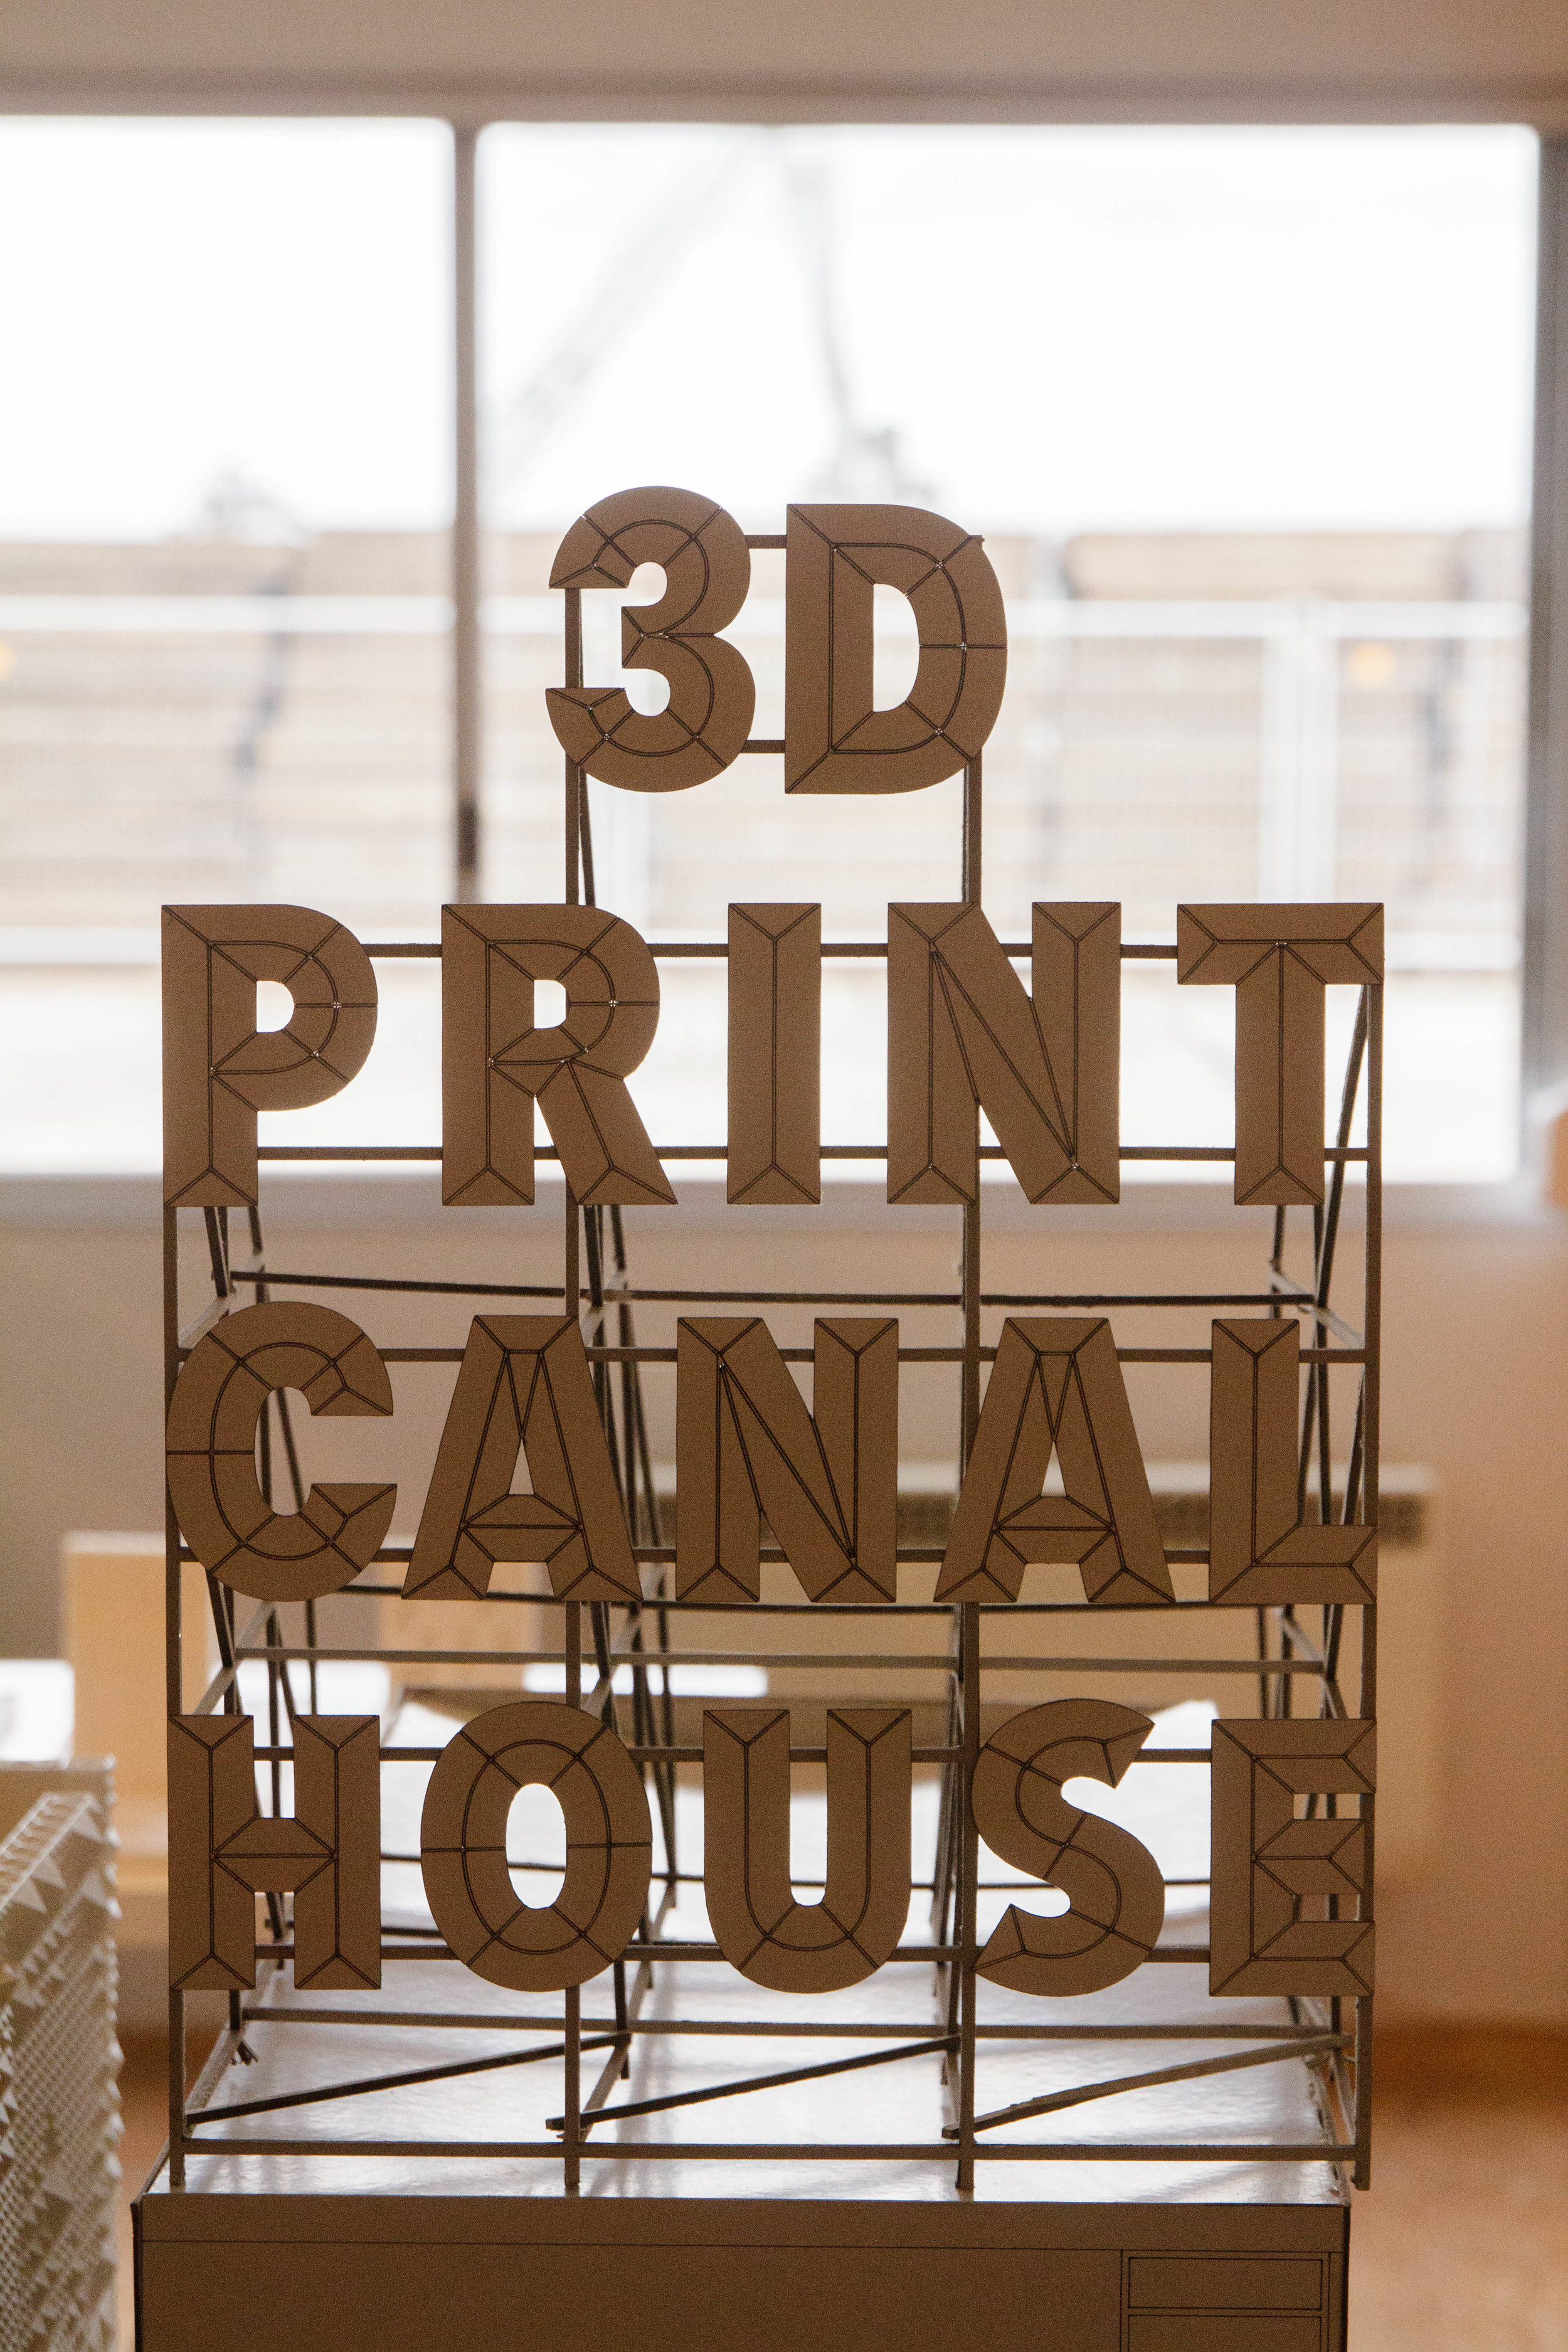 3D Print Canal House is a three year research project led by DUS Architects investigating new possibilities for 3D printing.